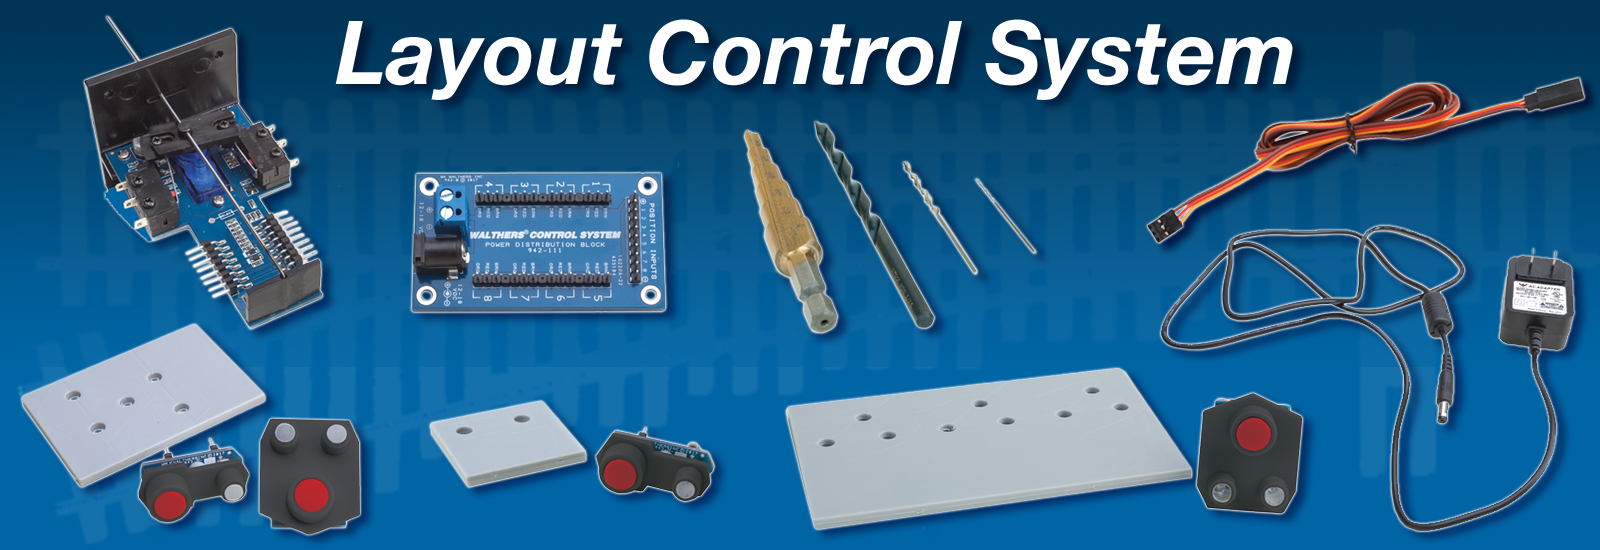 layout control system